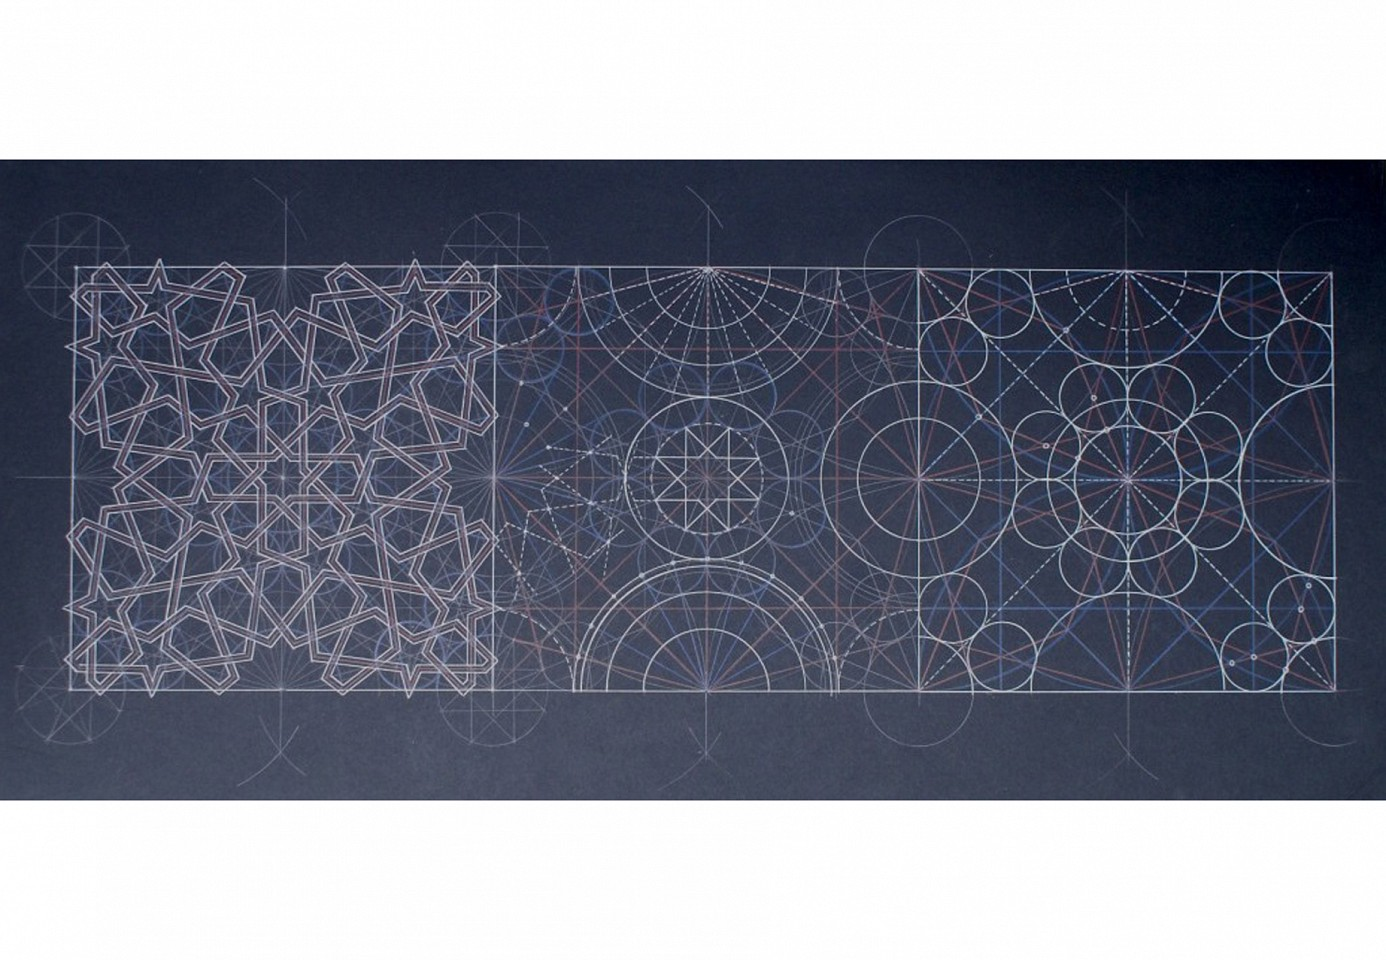 "<p><span class=""viewer-caption-artist"">Dana Awartani</span></p> <p><span class=""viewer-caption-title""><i>Geometric Progression Piece #1</i></span>, <span class=""viewer-caption-year"">2012</span></p> <p><span class=""viewer-caption-media"">Pencil and pen on mount board</span></p> <p><span class=""viewer-caption-dimensions"">100 x 100 cm (39 3/8 x 39 3/8 in.)</span></p> <p><span class=""viewer-caption-inventory"">DAN0002</span></p> <p><span class=""viewer-caption-aux""></span></p>"